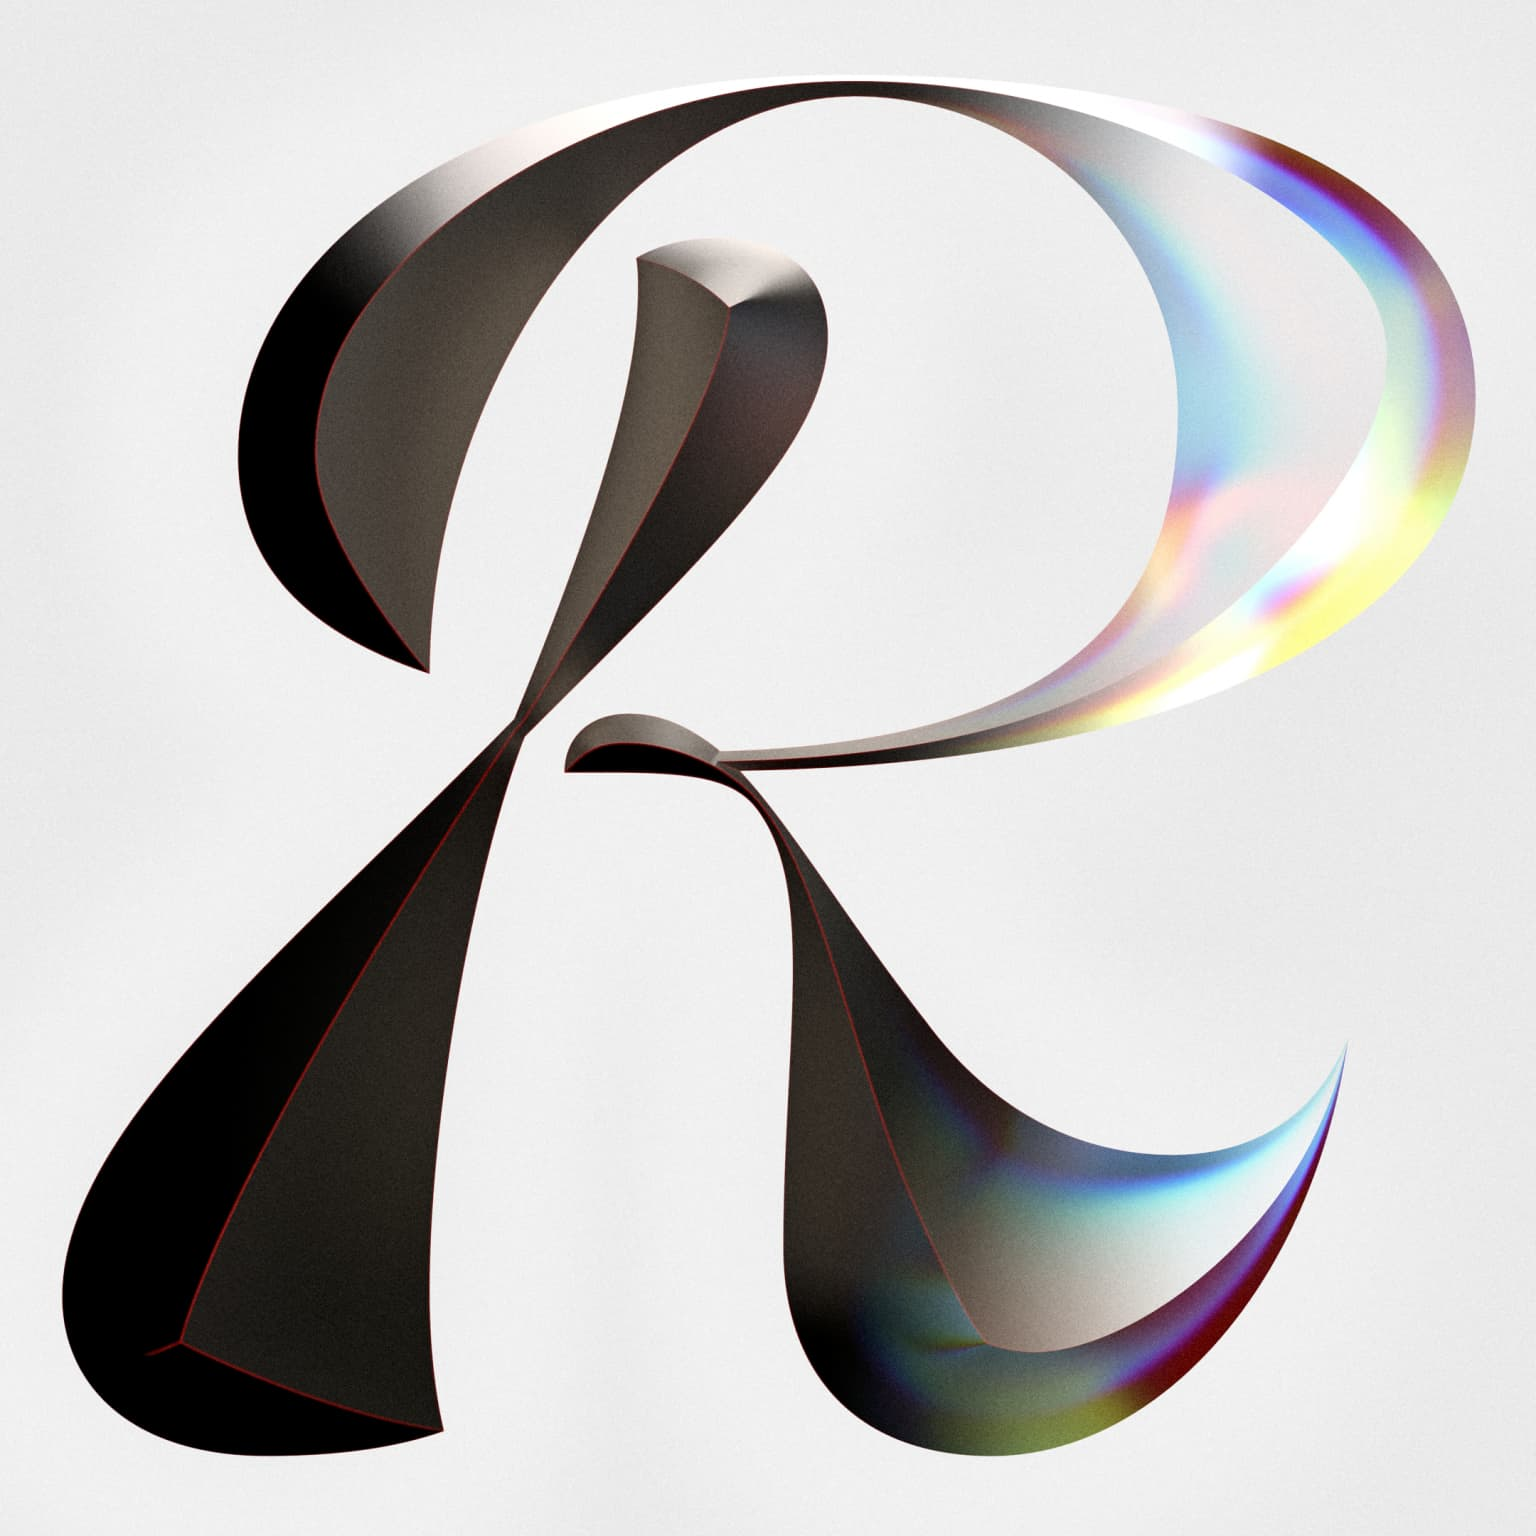 Letter R Exploration - From iron to glass